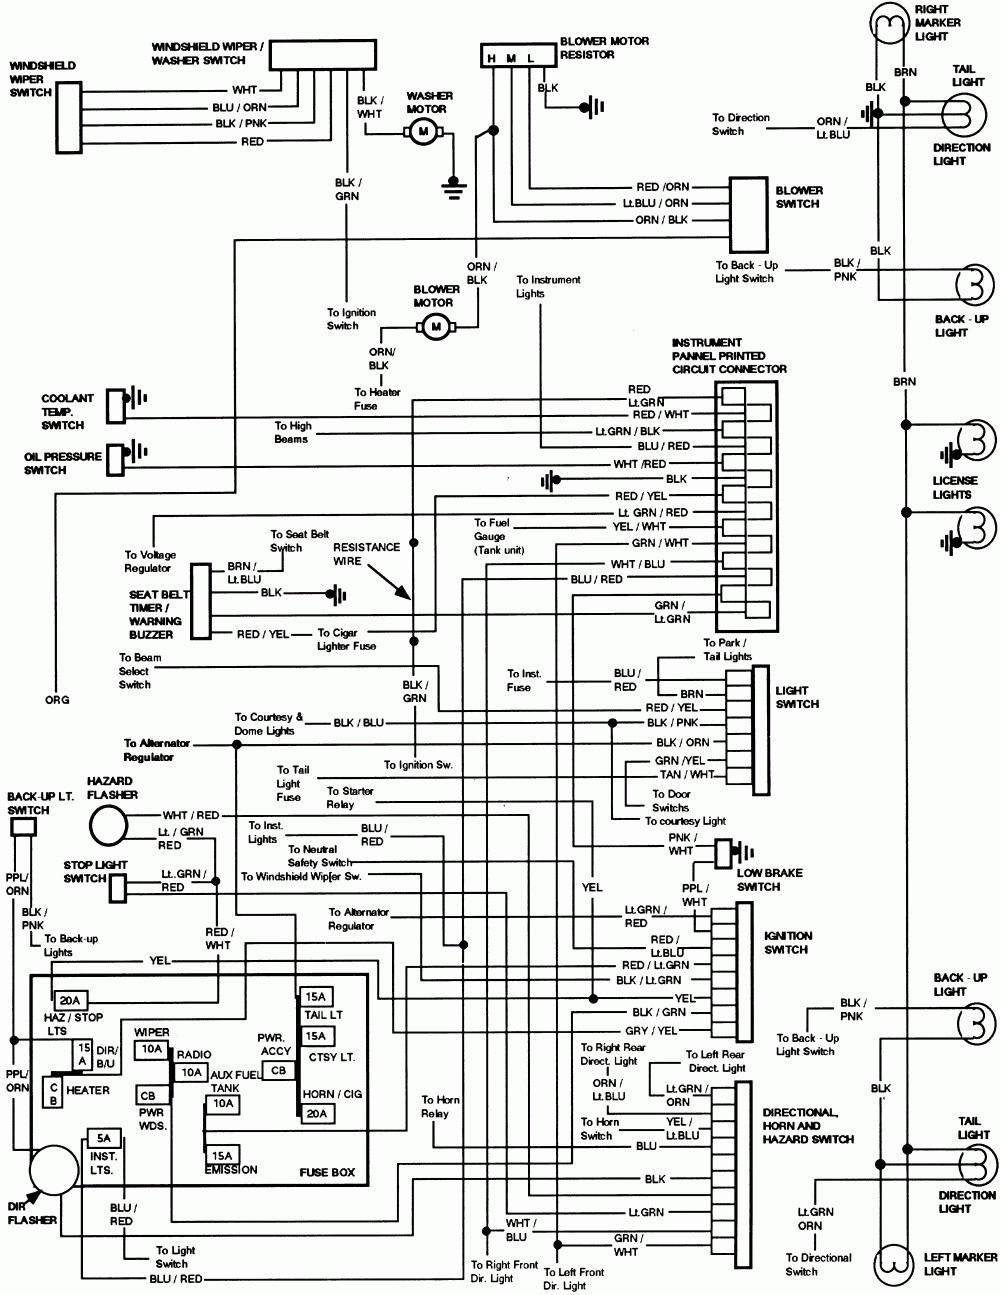 hight resolution of 95 ford thunderbird engine diagram wiring diagrams bib 1995 thunderbird ecm wiring diagram